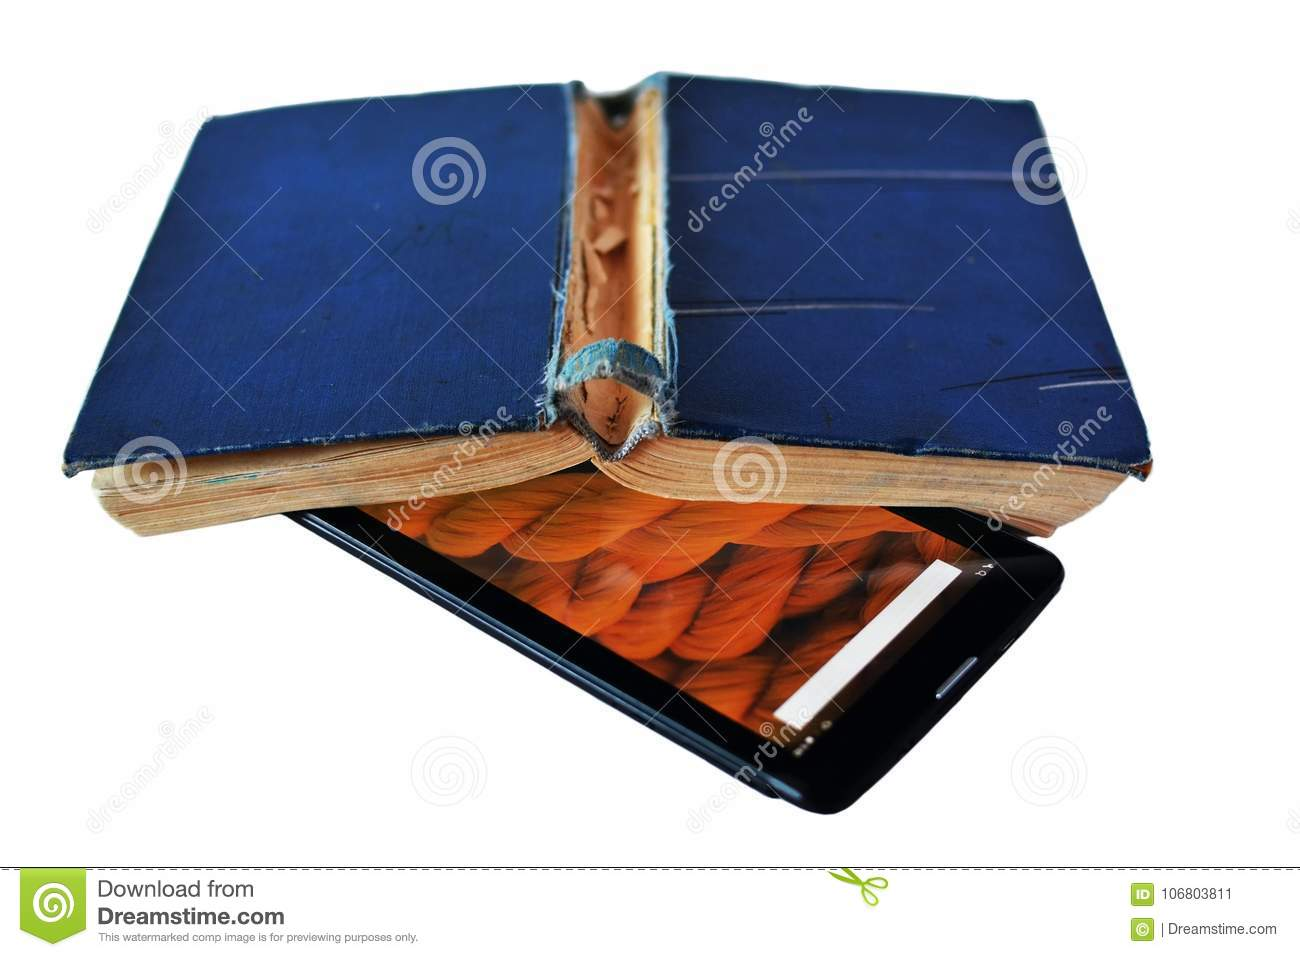 ebook reader for samsung tablet